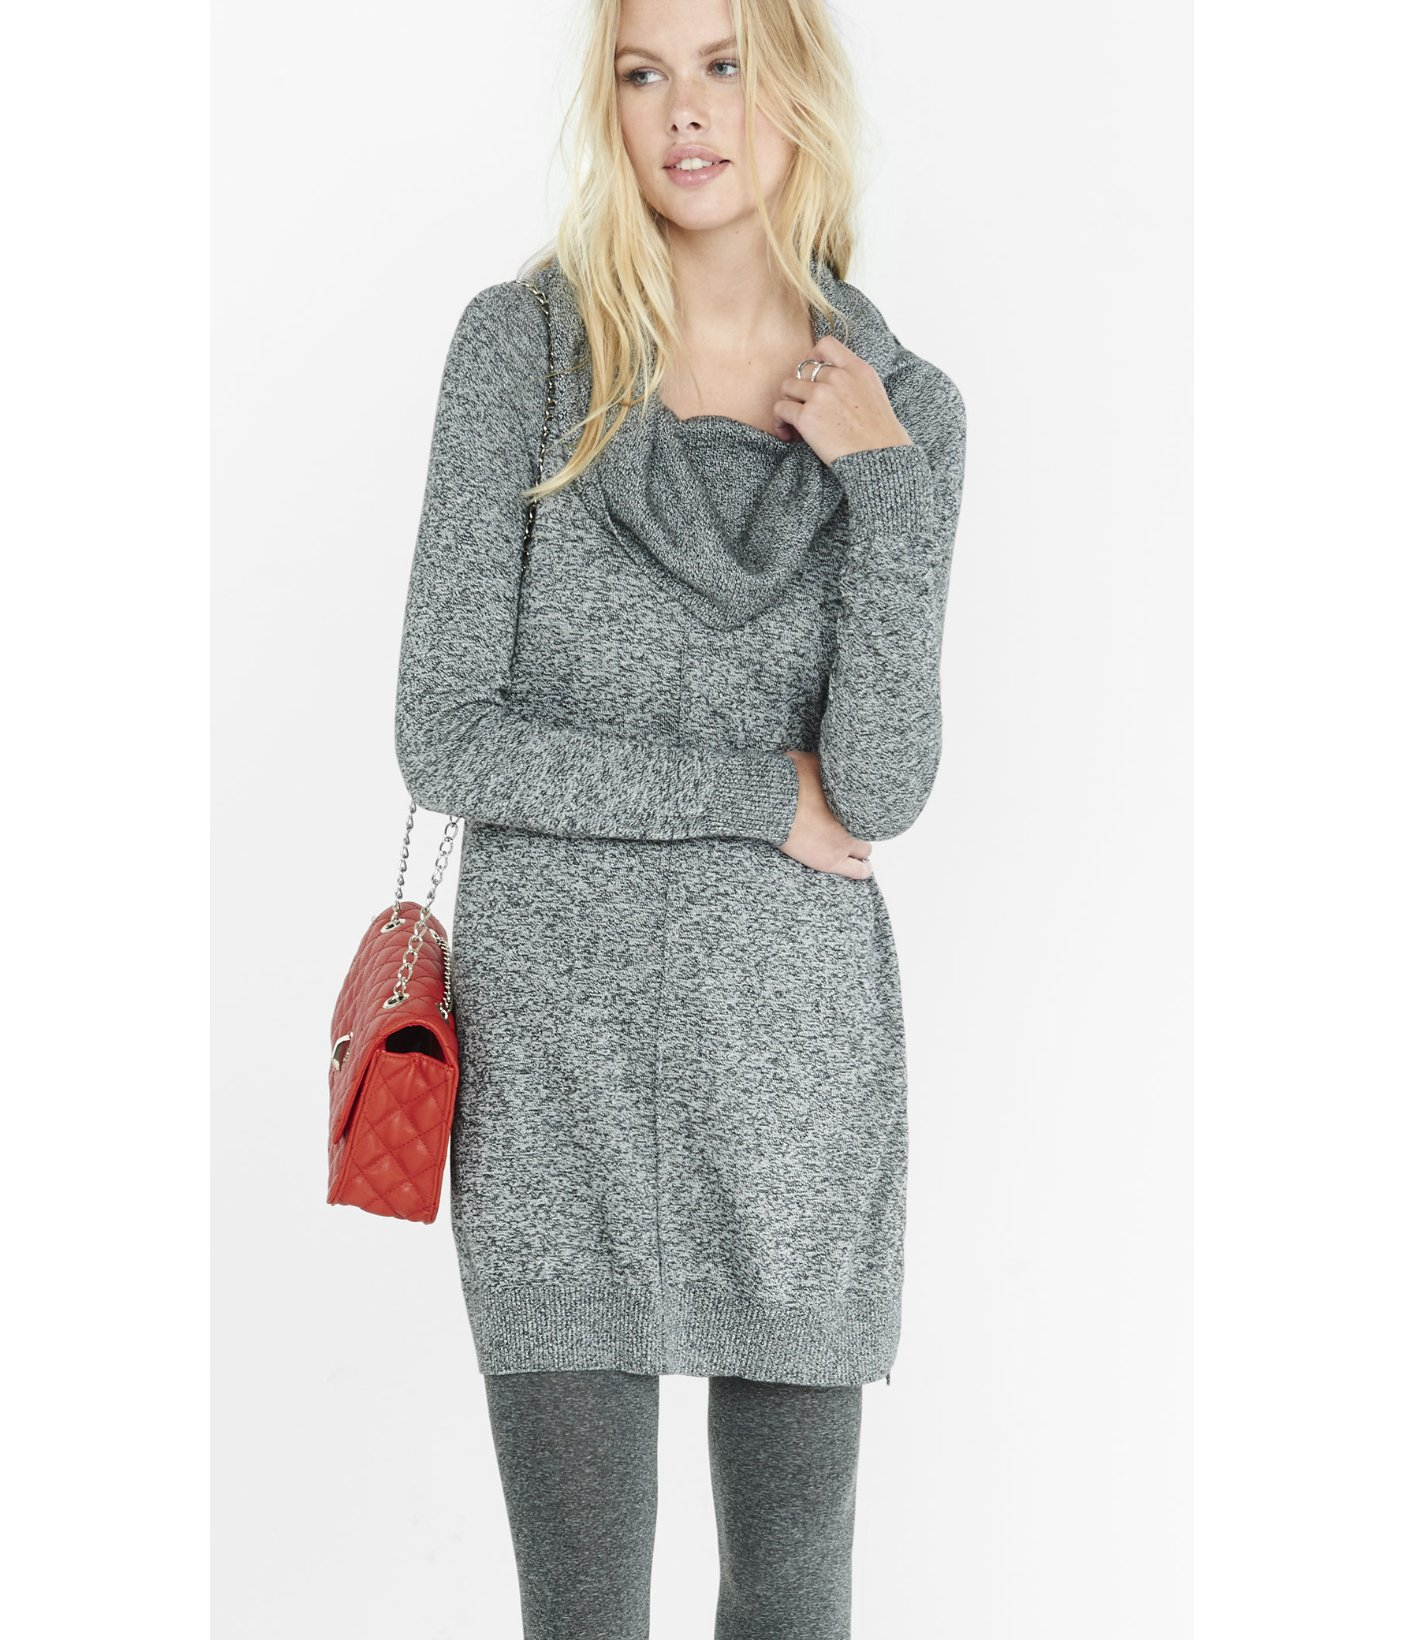 Express Marl Cowl Neck Sweater Dress in Gray | Lyst